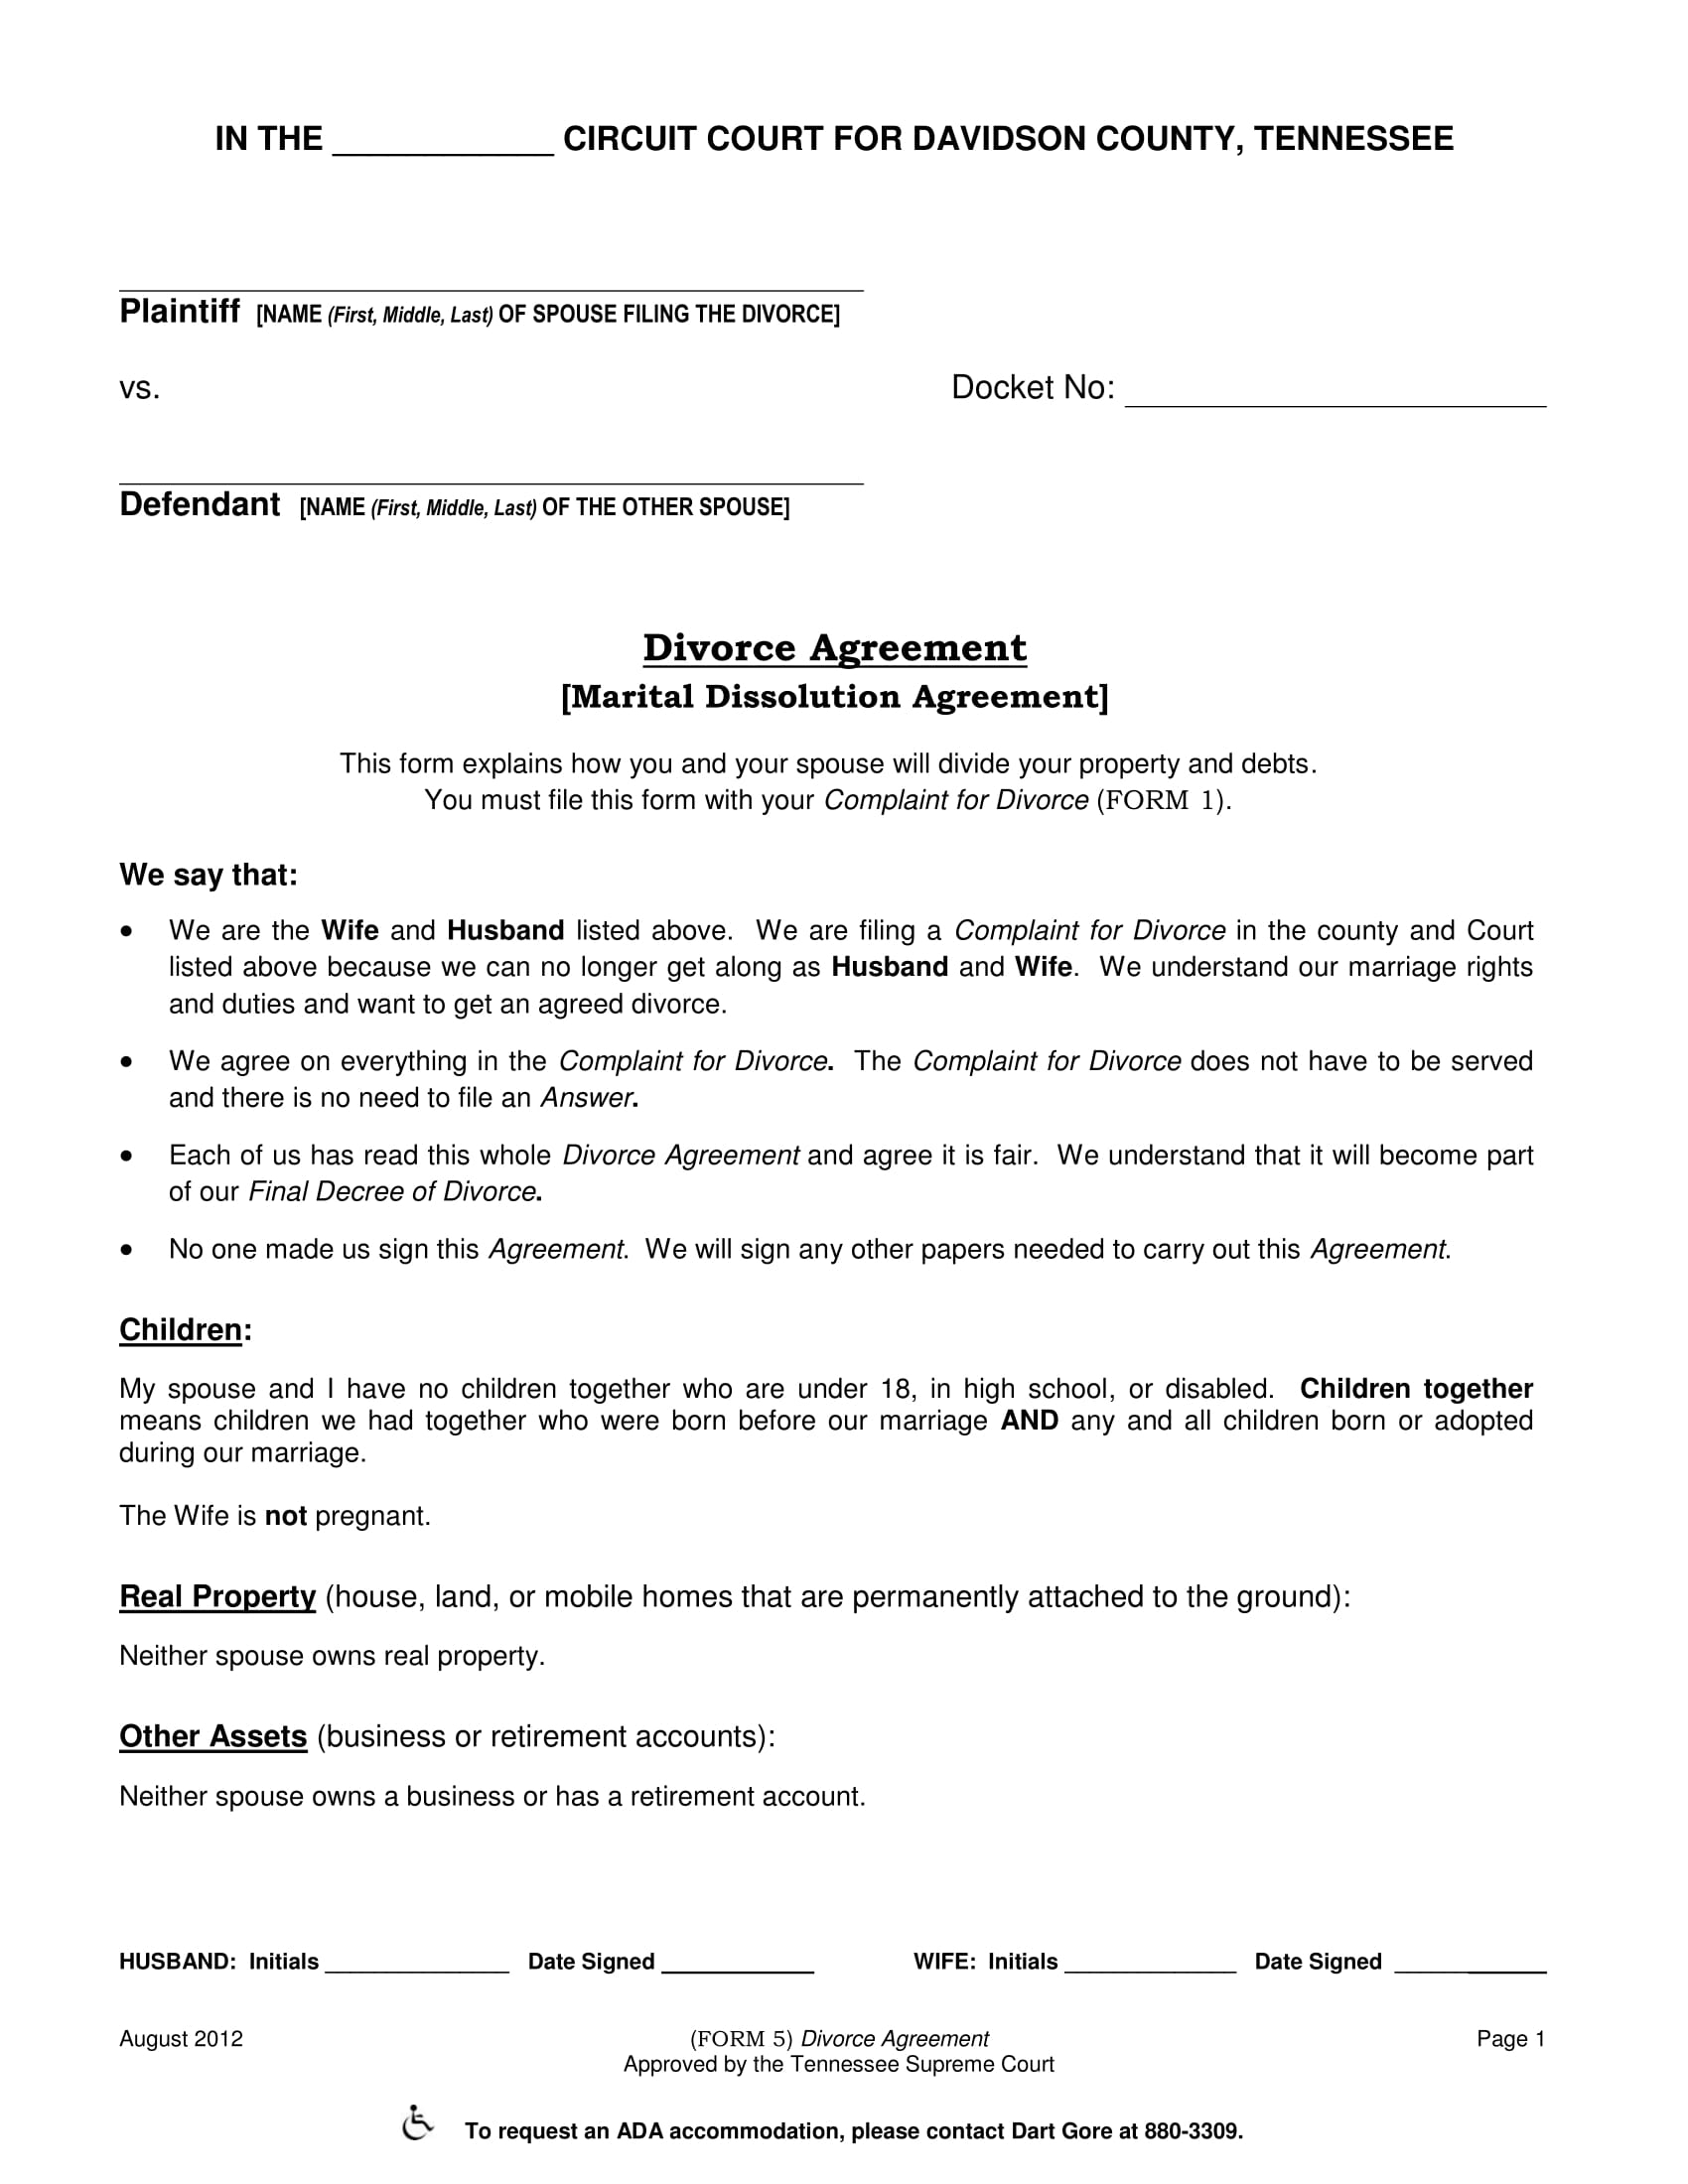 divorce agreement form 1